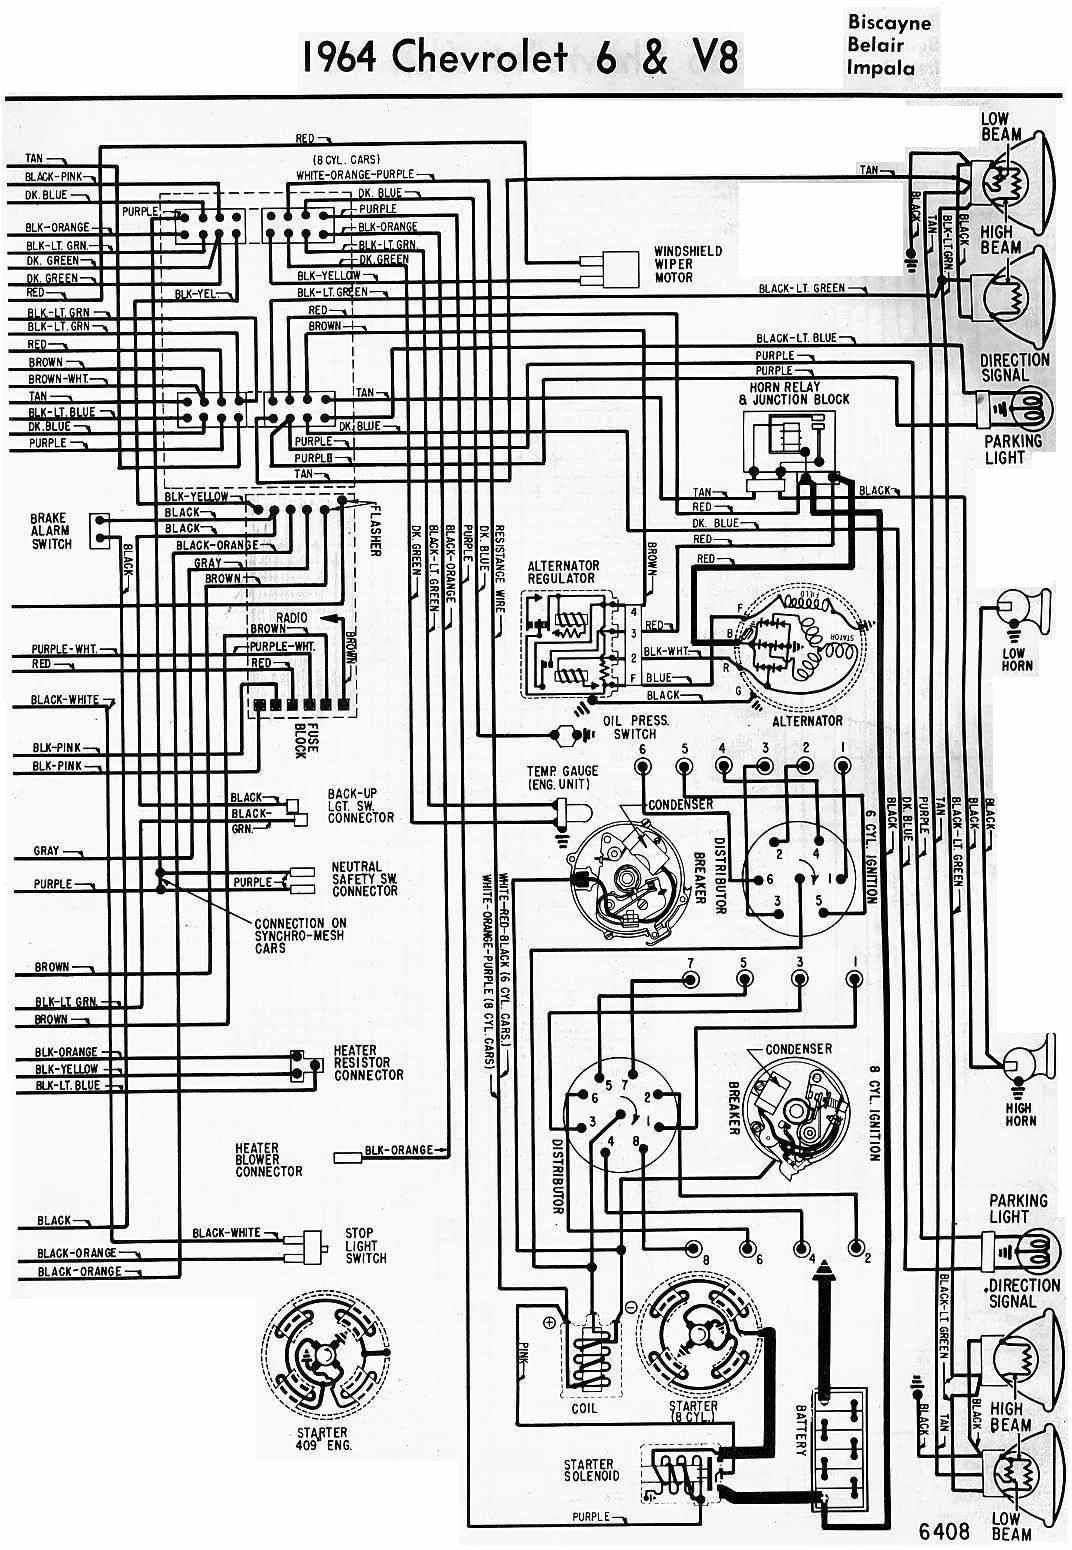 small resolution of gm fuse box diagram 1964 impala wiring diagram paper 1964 chevy c10 fuse box diagram